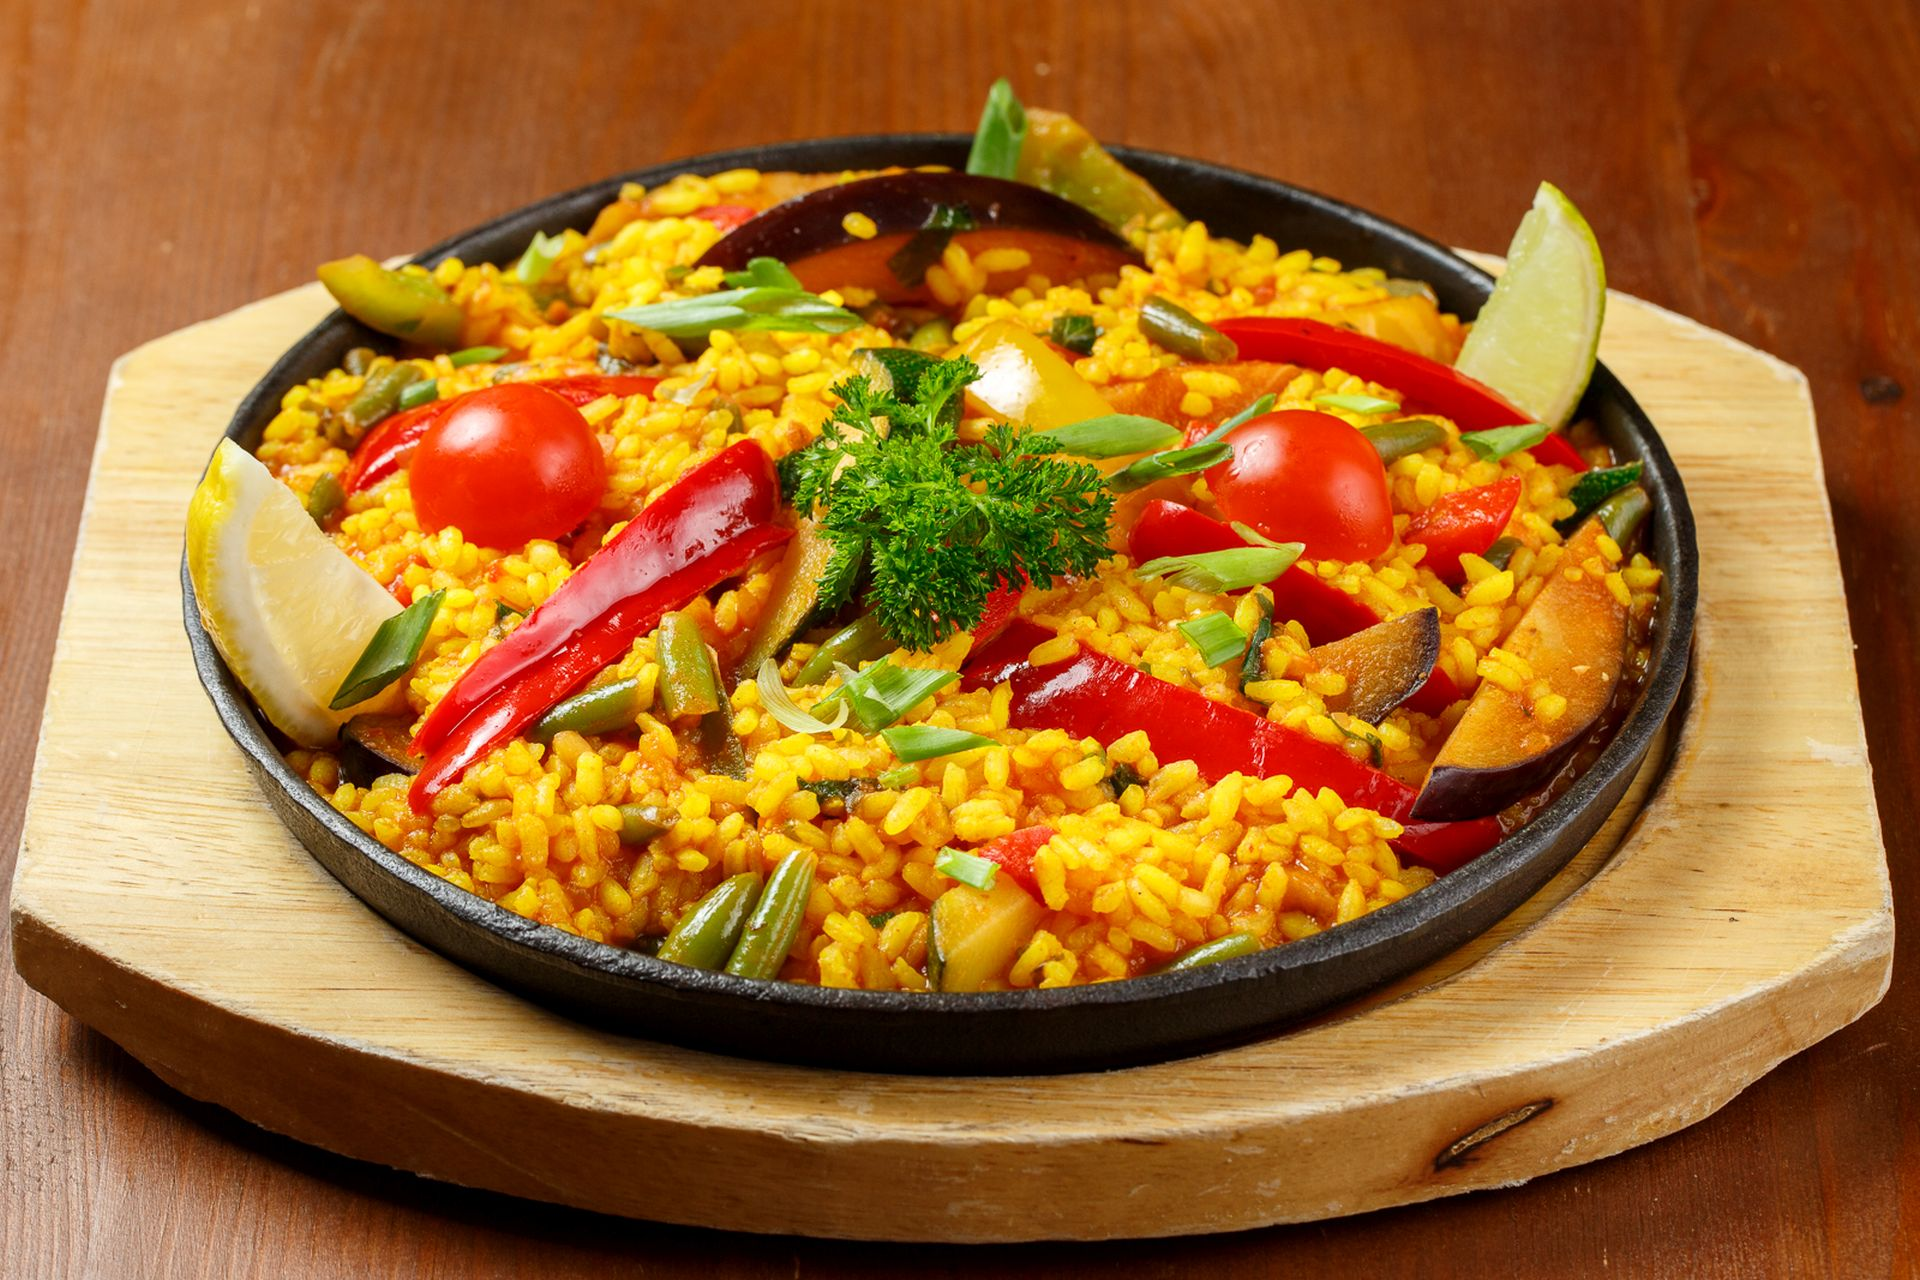 Arroz with vegetables